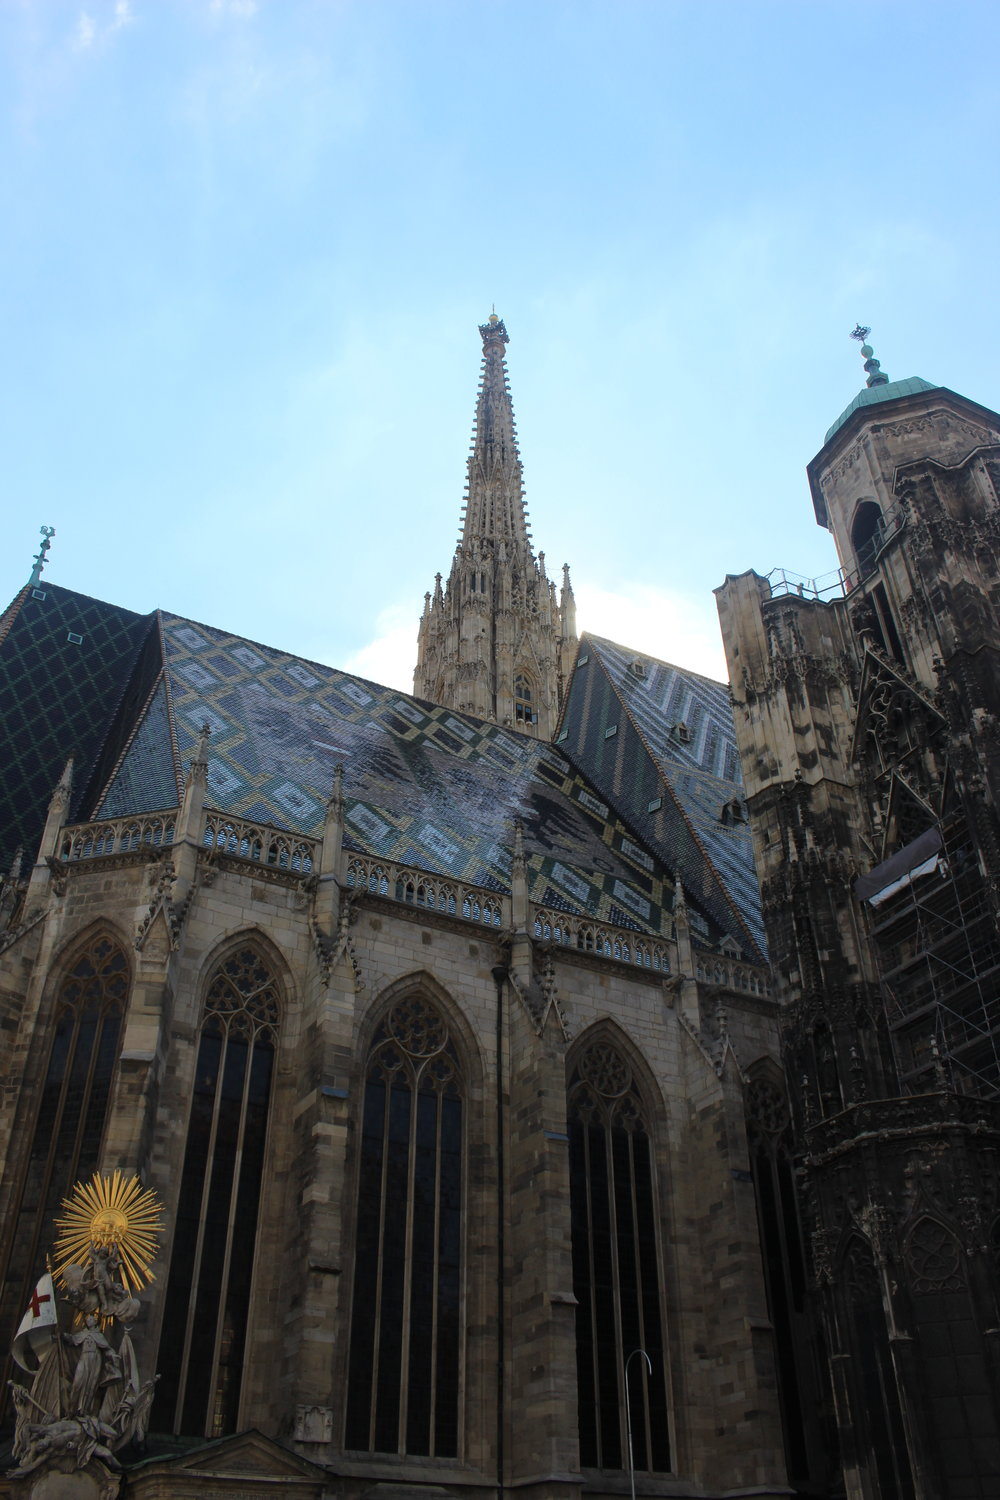 The city gave up on trying to clean the dirt from pollution off of the cathedral.